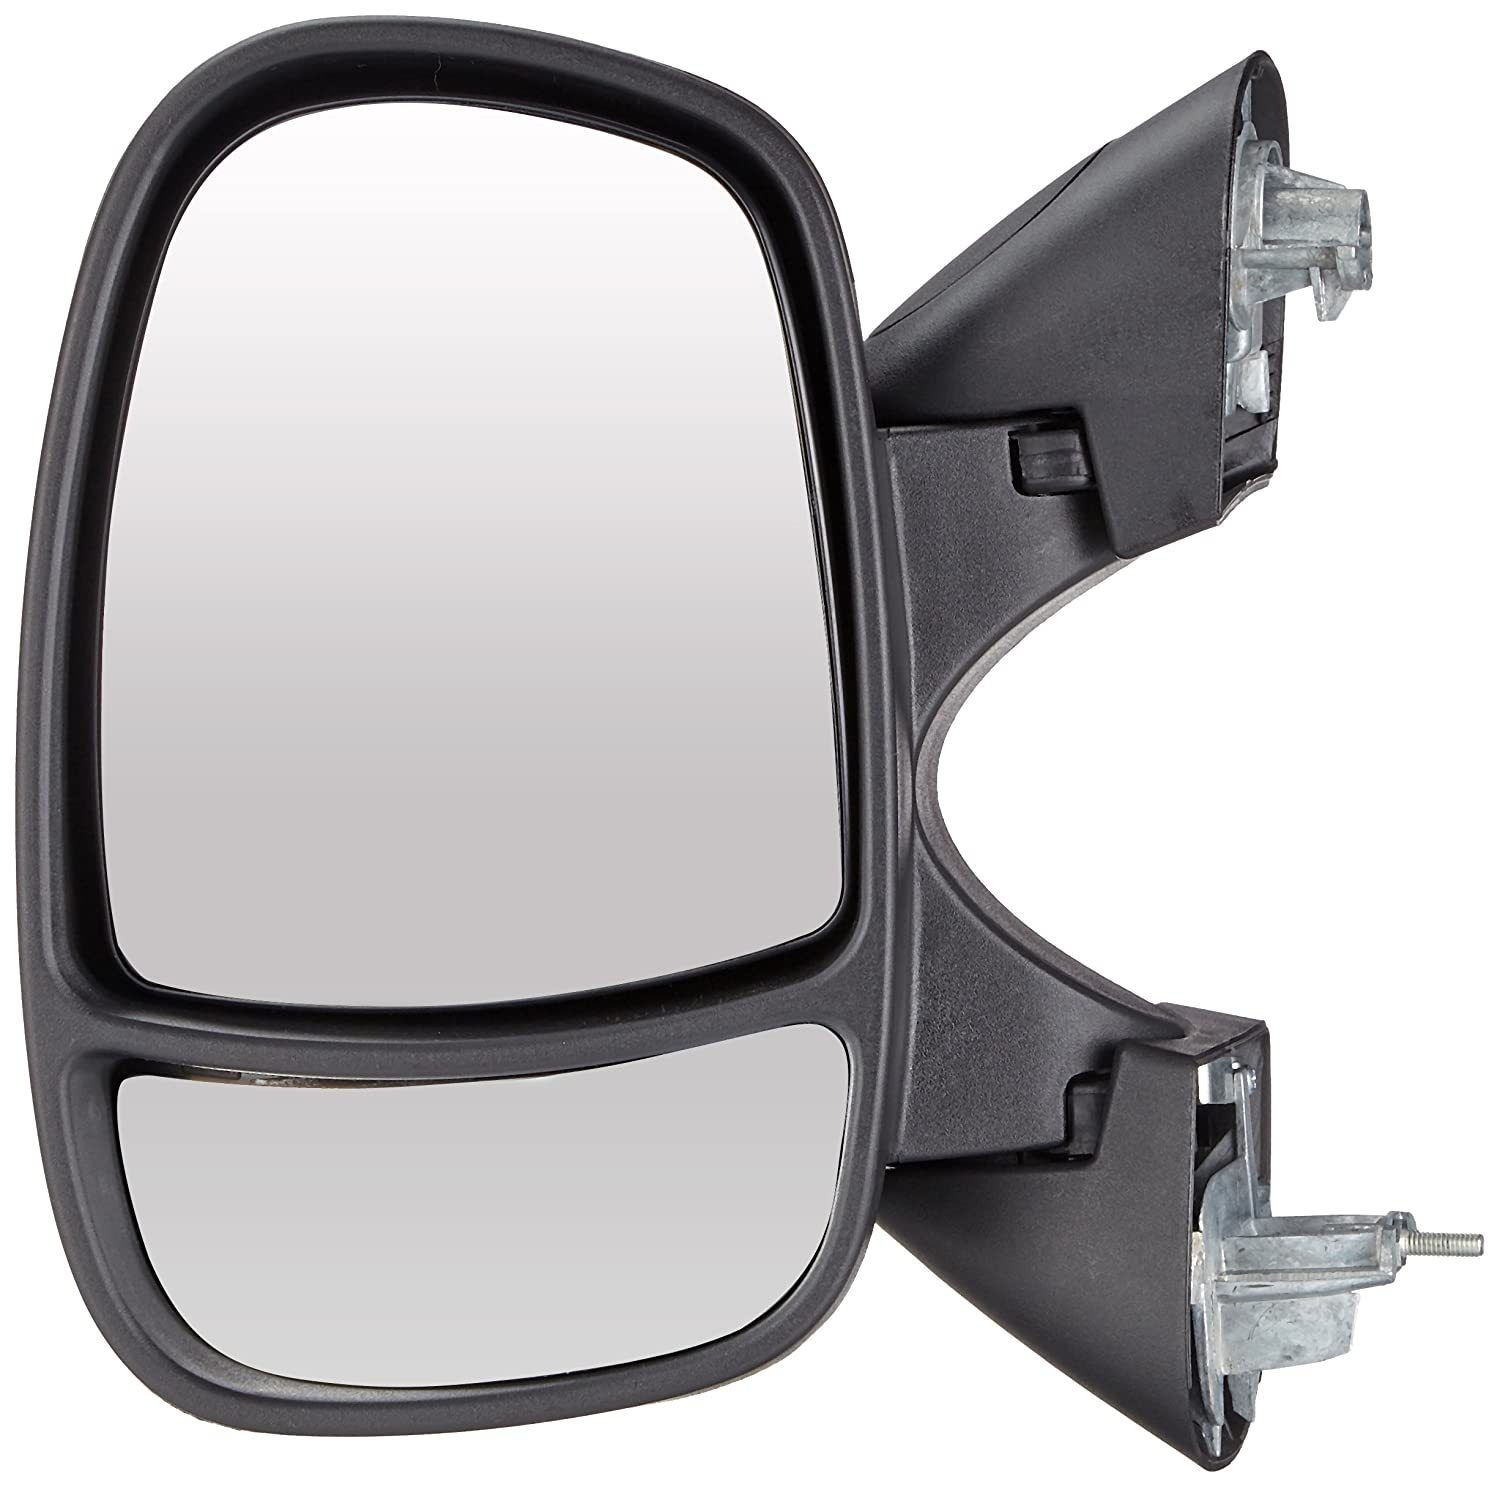 Melchioni 335015770/Manual Rearview for Car